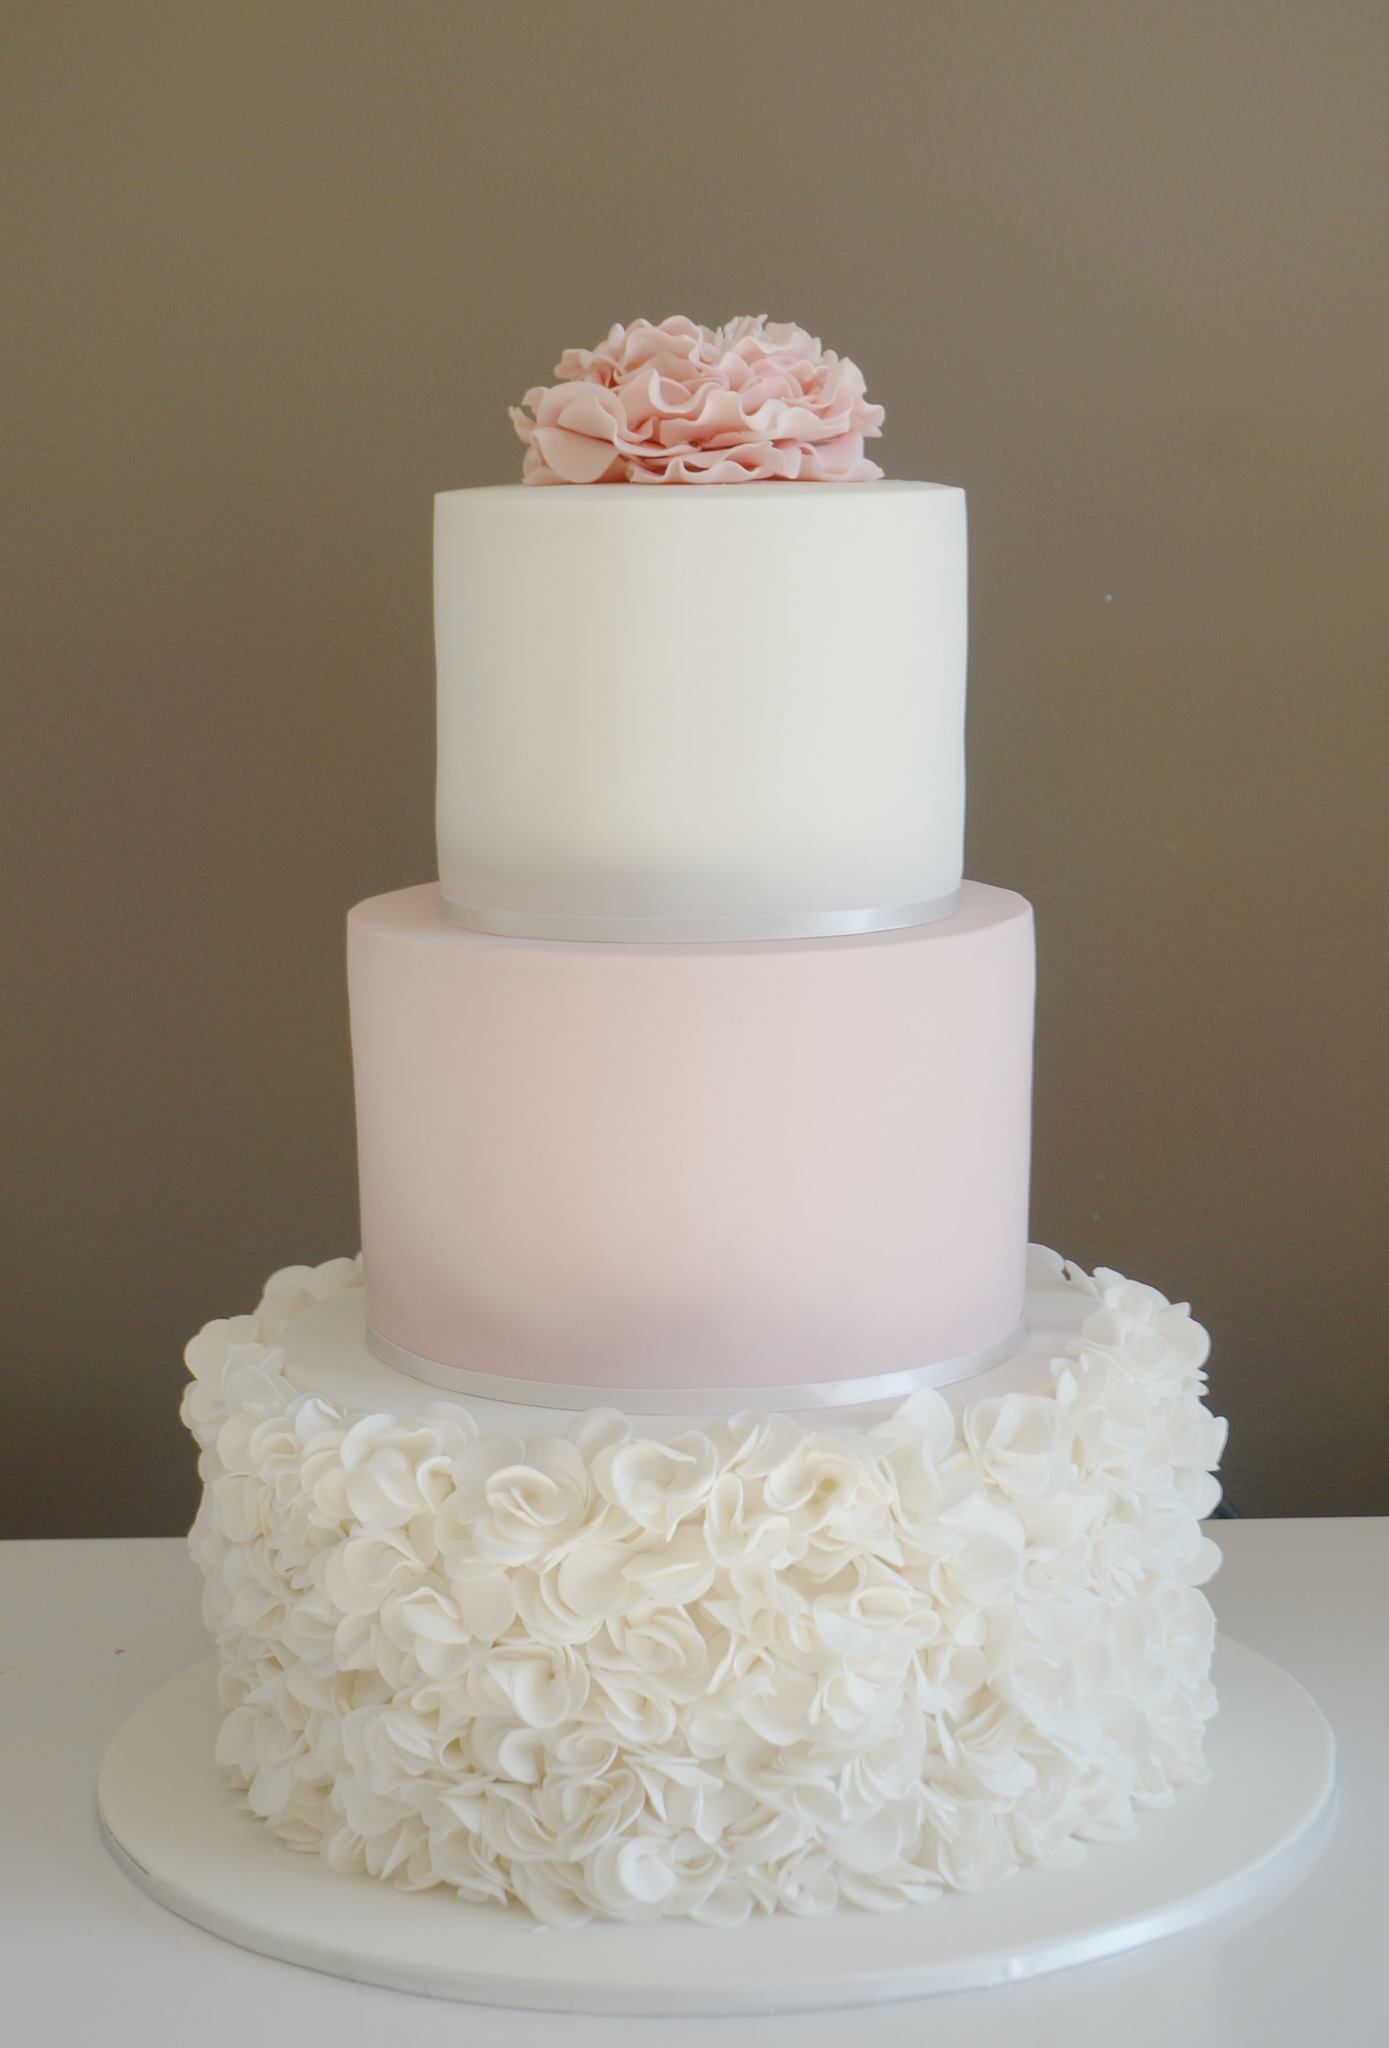 Wedding Tiered Cakes  PINK AND WHITE WEDDING CAKE VERY PRETTY 3 tier cake with